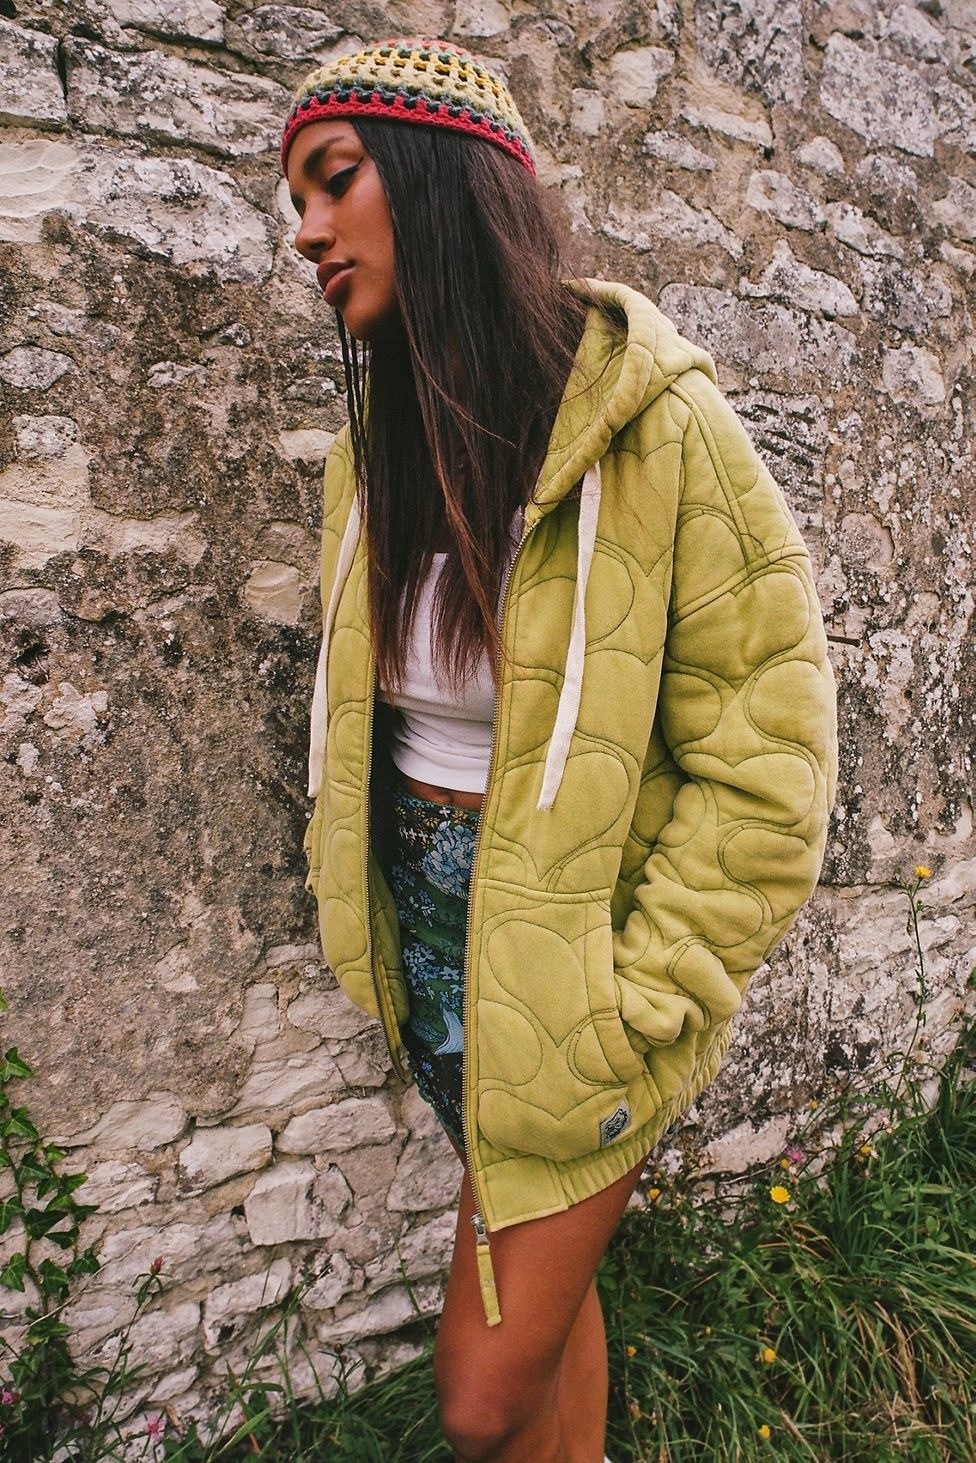 a model wearing the green embroidered sweatshirt outside